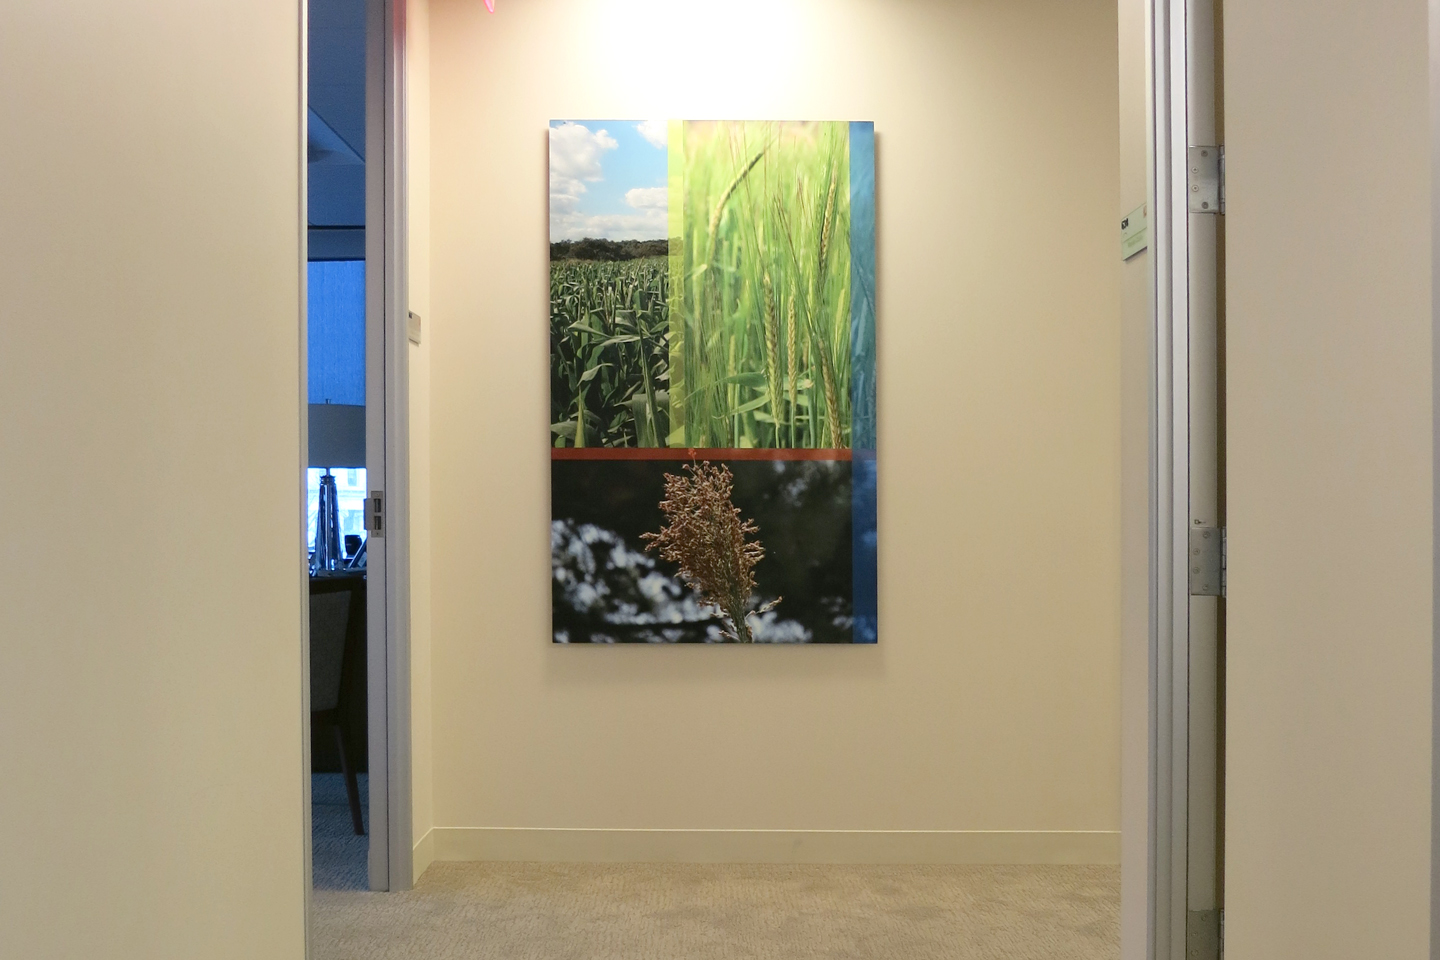 Another custom collage at the end of a corridor.